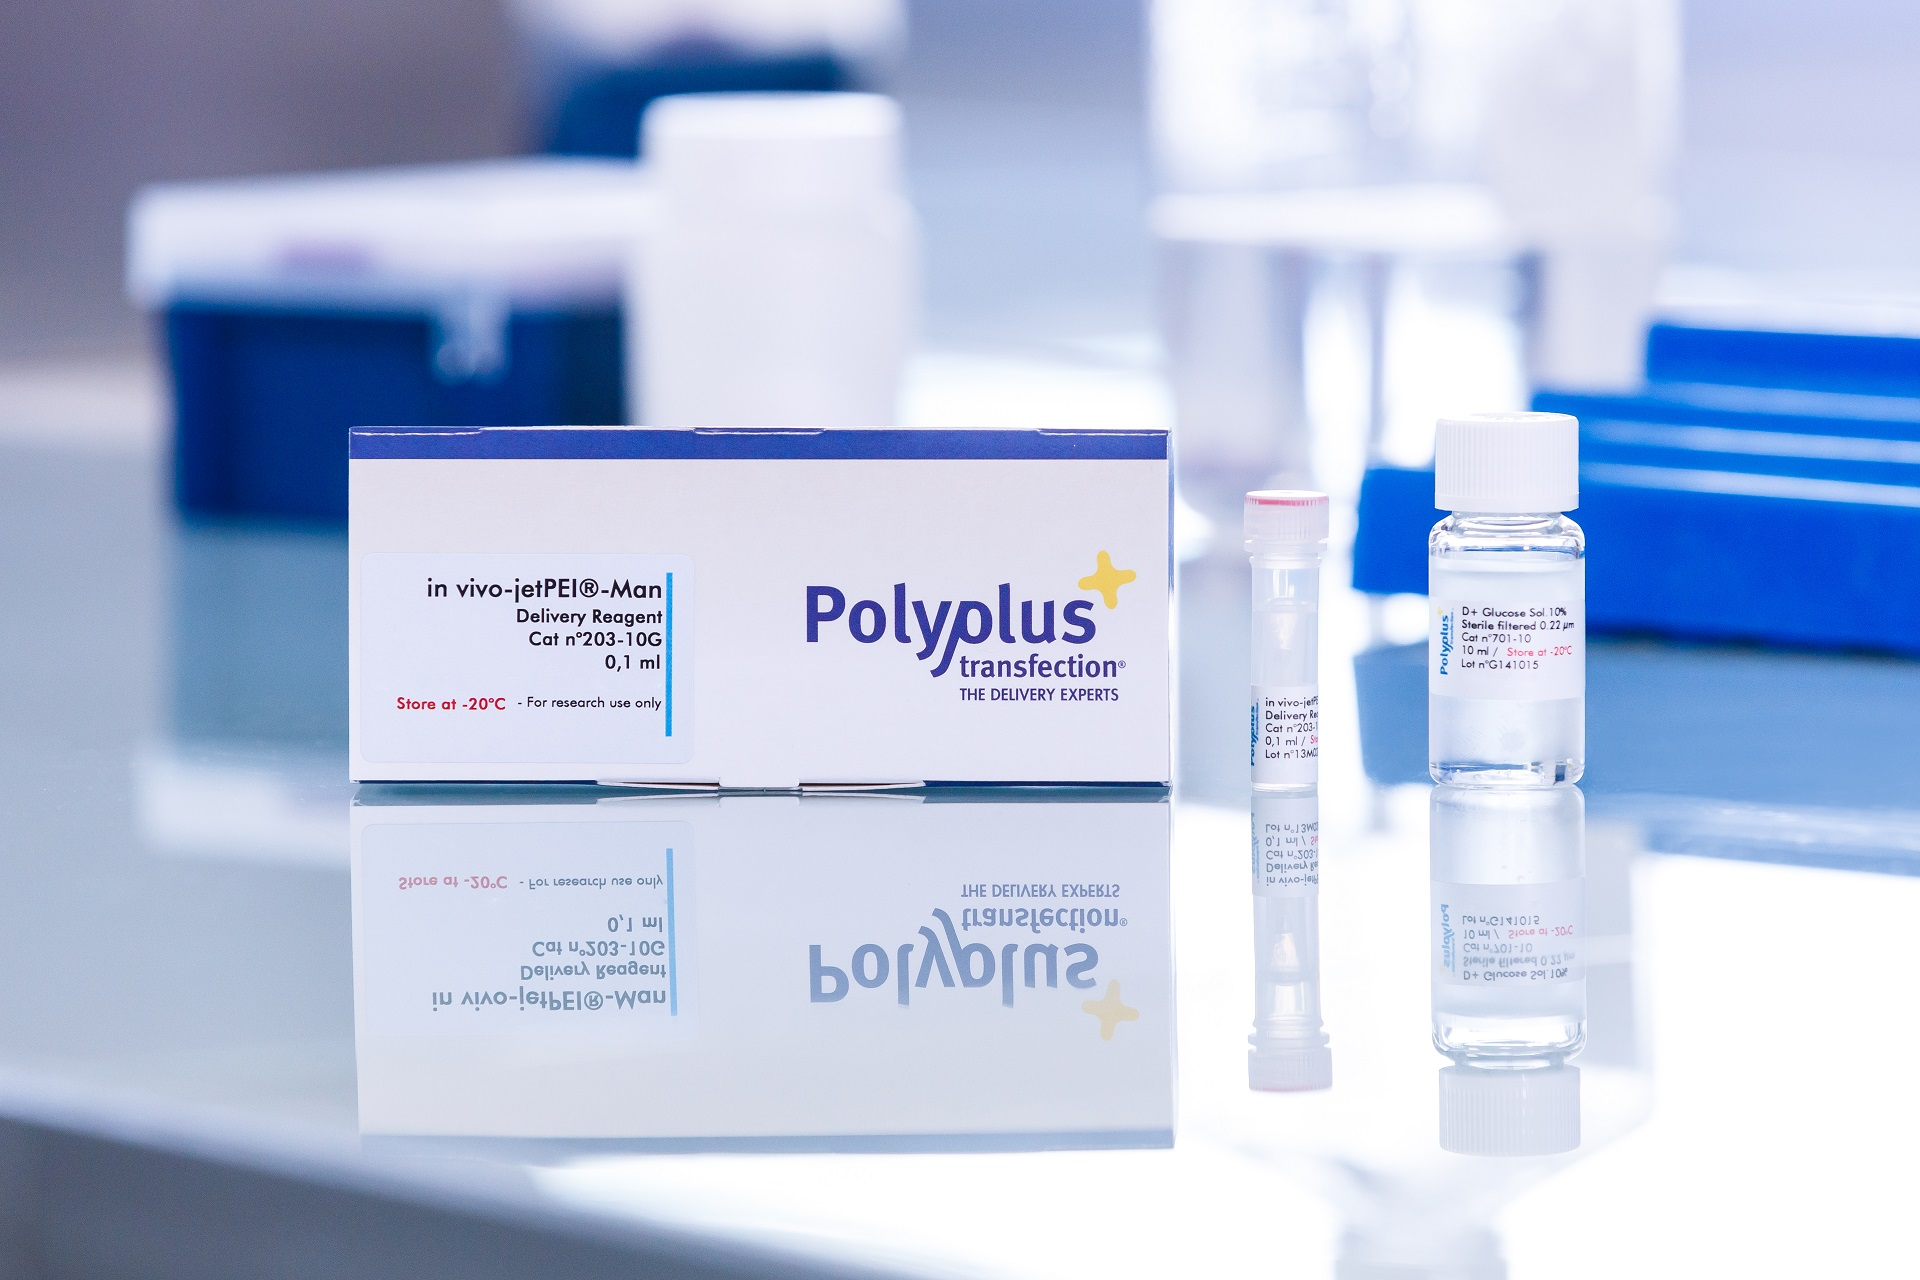 in vivo-jetPEI-Man packaging - Polyplus-transfection